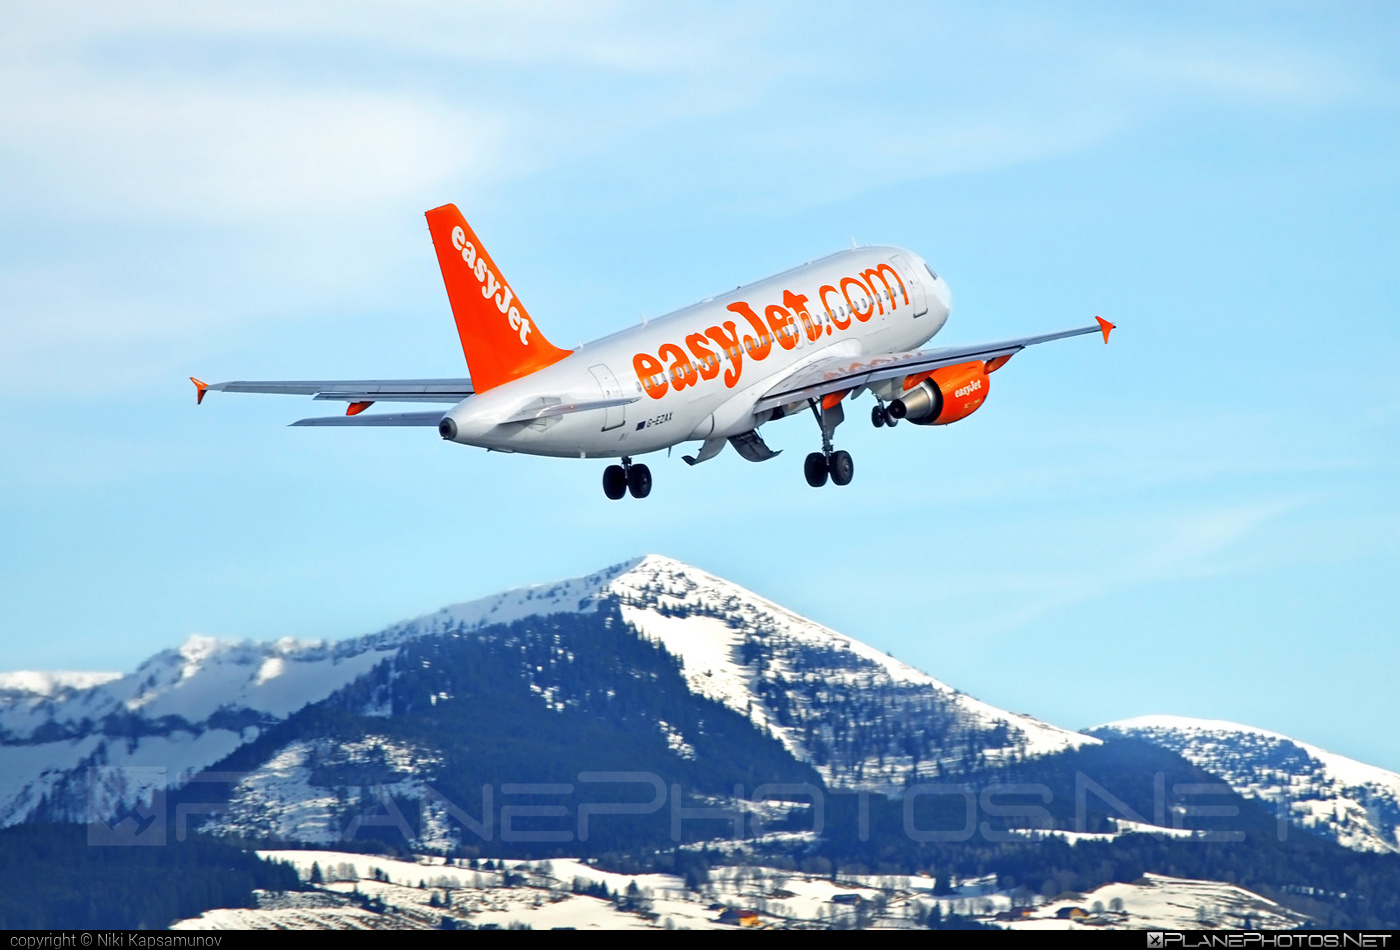 Airbus A319-111 - G-EZAX operated by easyJet #a319 #a320family #airbus #airbus319 #easyjet